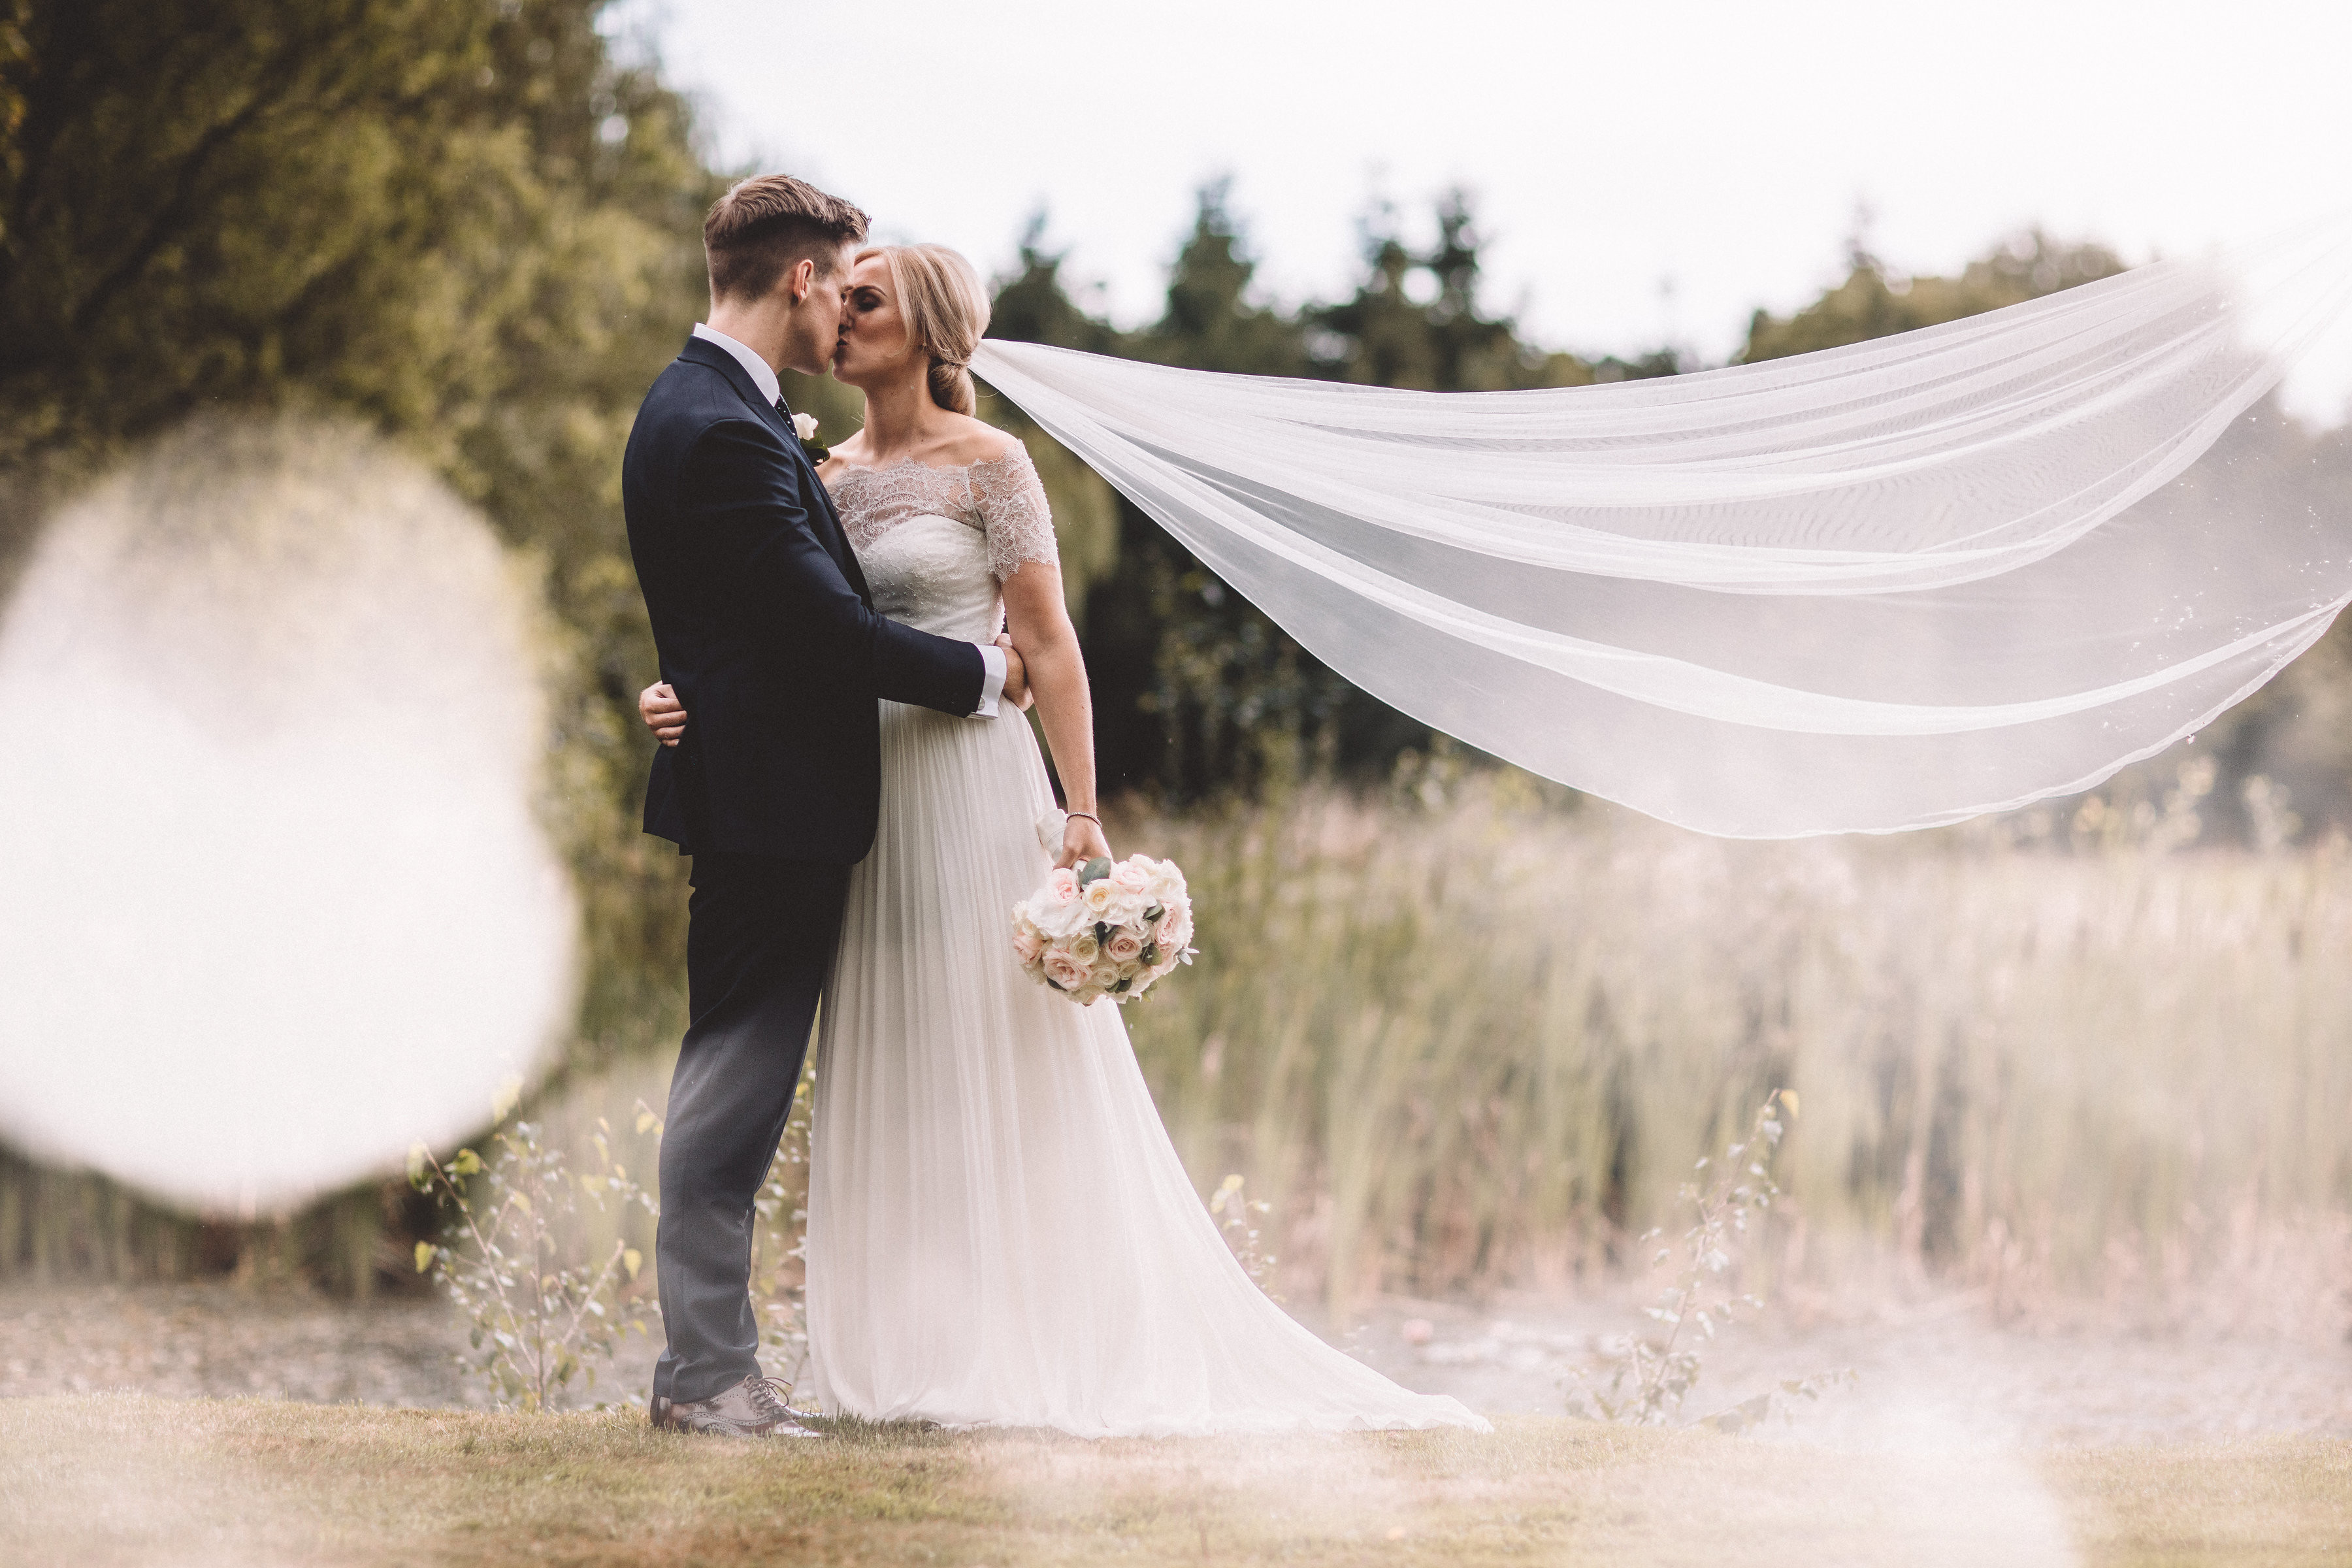 english wedding, natural wedding, summer wedding, spring wedding, laid back wedding, chill wedding, relaxed wedding, romantic wedding, bride to be 2019